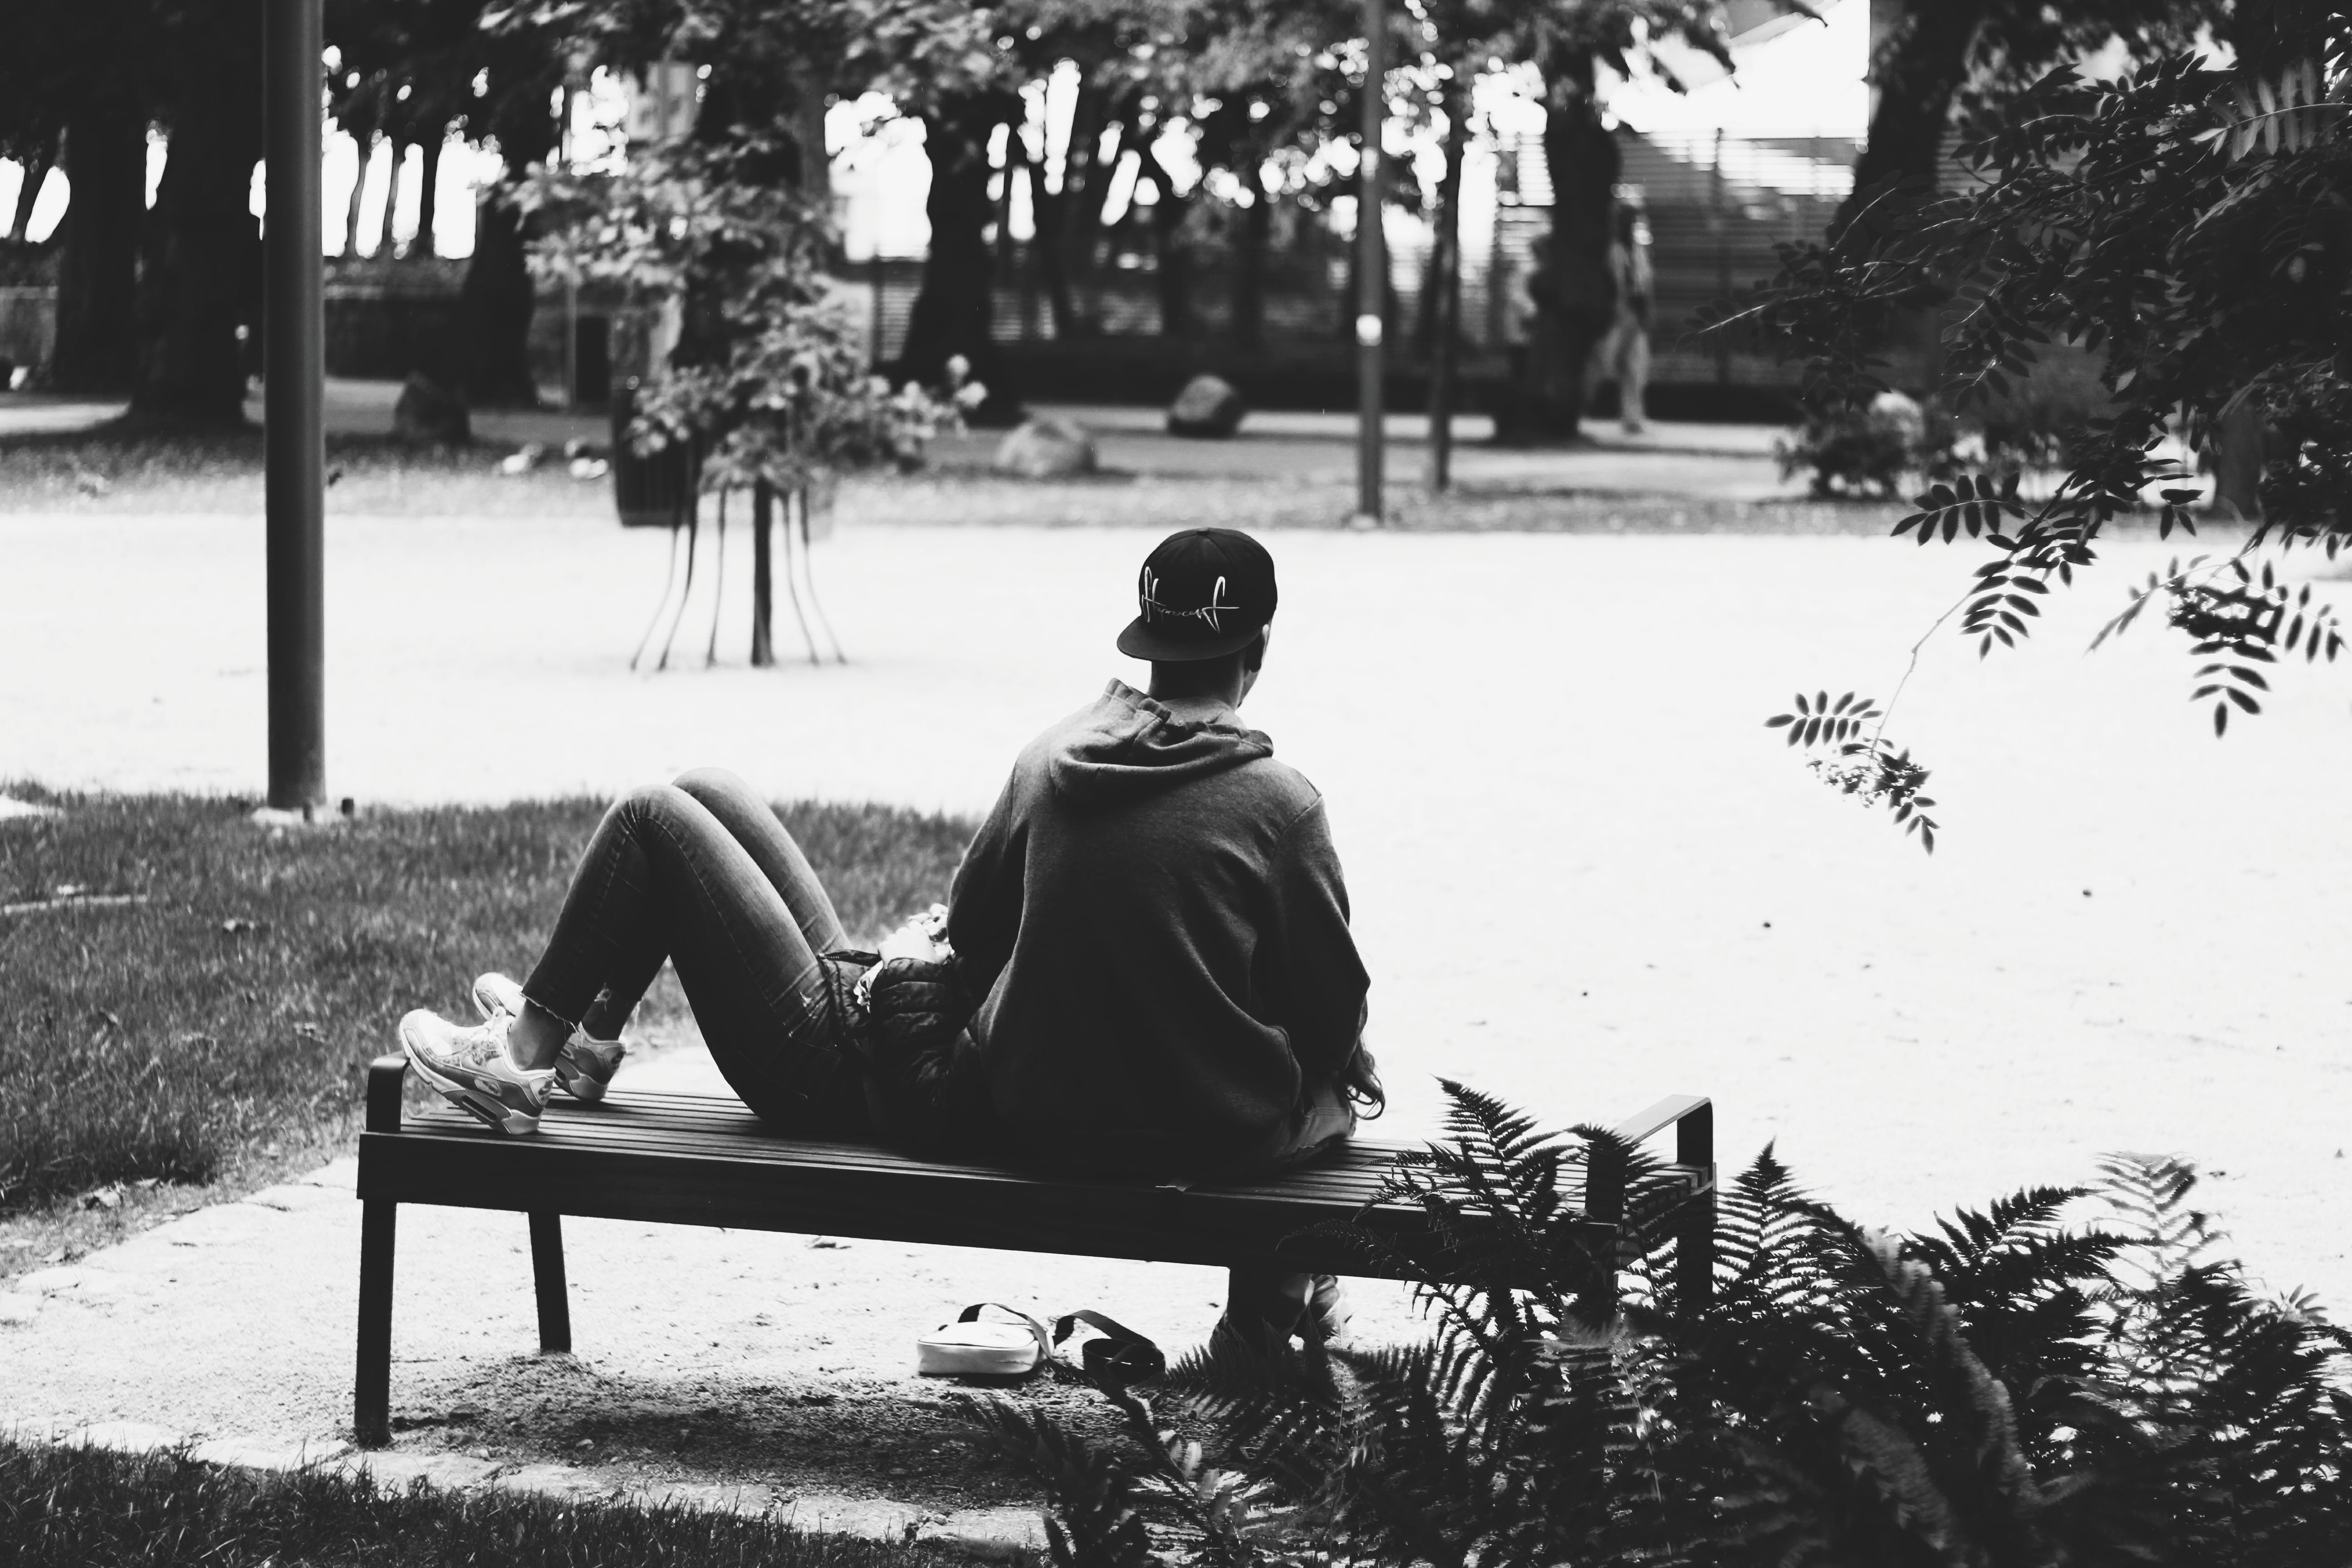 Grayscale Photo of a Couple sitting on a Bench